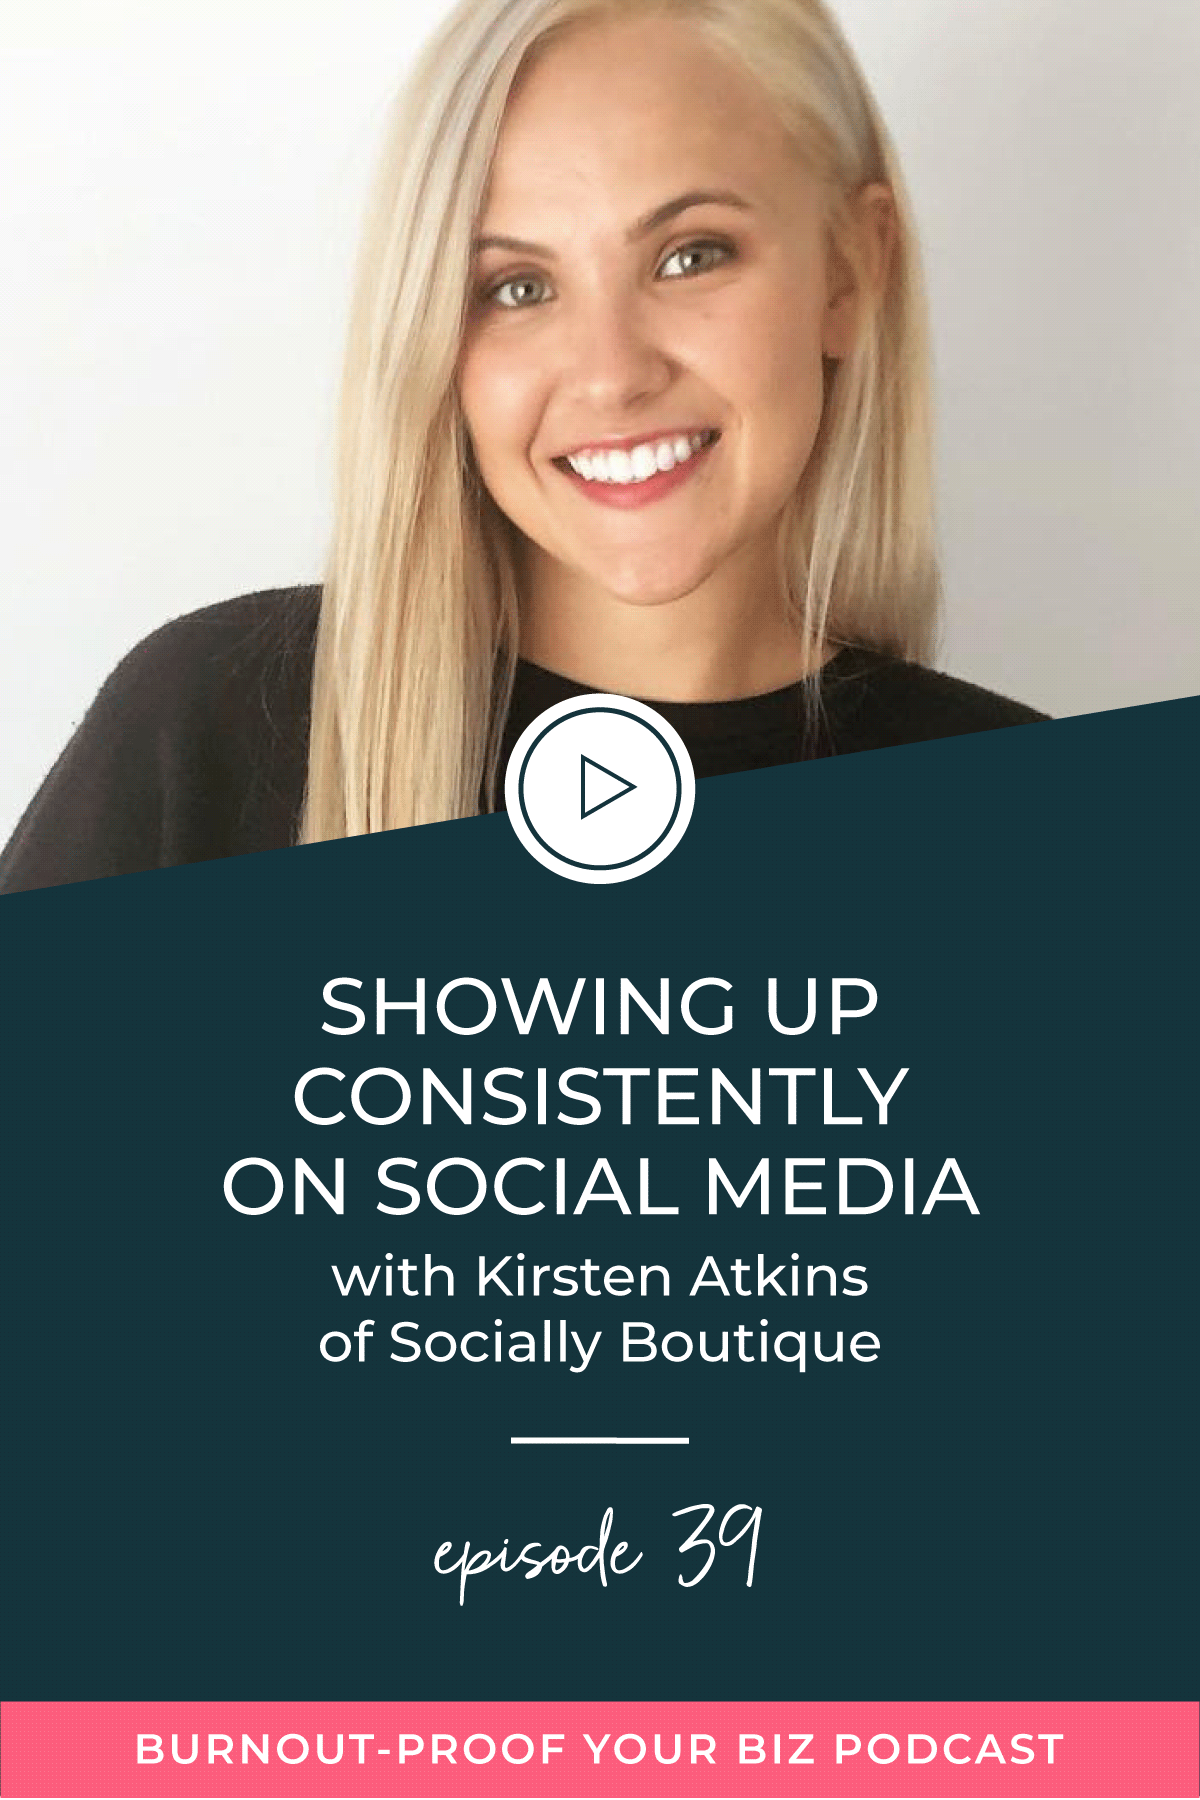 Burnout-Proof Your Biz Podcast with Chelsea B Foster | Episode 039 - Showing Up Consistently On Social Media with Kirsten Atkins of Socially Boutique | Learn how to run your biz and live your dream life on your own terms without the fear of burnout. || Social Media Marketing | Being Consistent | Consistent Social Media | Social Media Posts | Instagram Strategy | Facebook Strategy | Social Media Strategy | Productive Entrepreneur | Productivity | Workflows for Social Media |